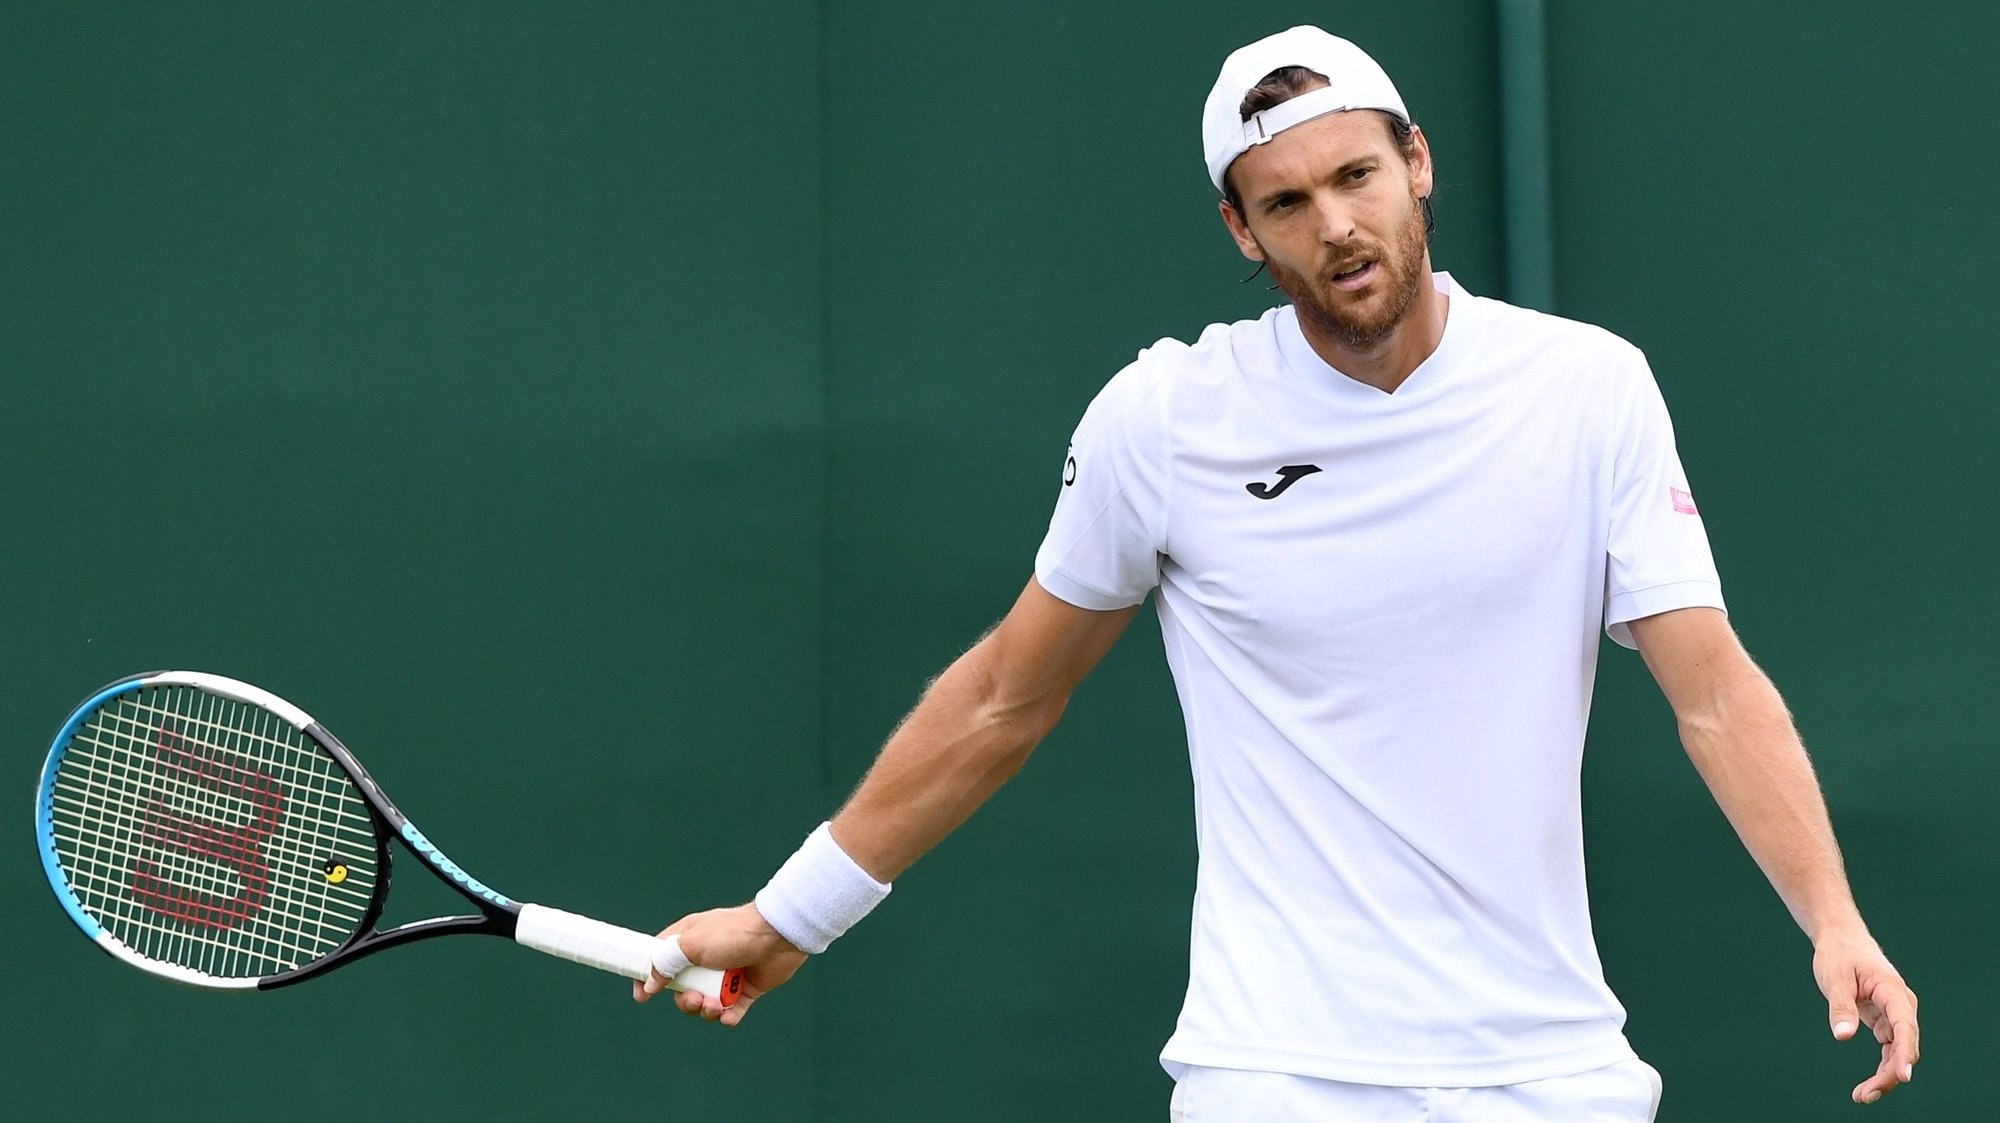 epa09308411 Joao Sousa of Portugal reacts during the 1st round match against Andreas Seppi of Italy  at the Wimbledon Championships, Wimbledon, Britain 28 June 2021.  EPA/FACUNDO ARRIZABALAGA